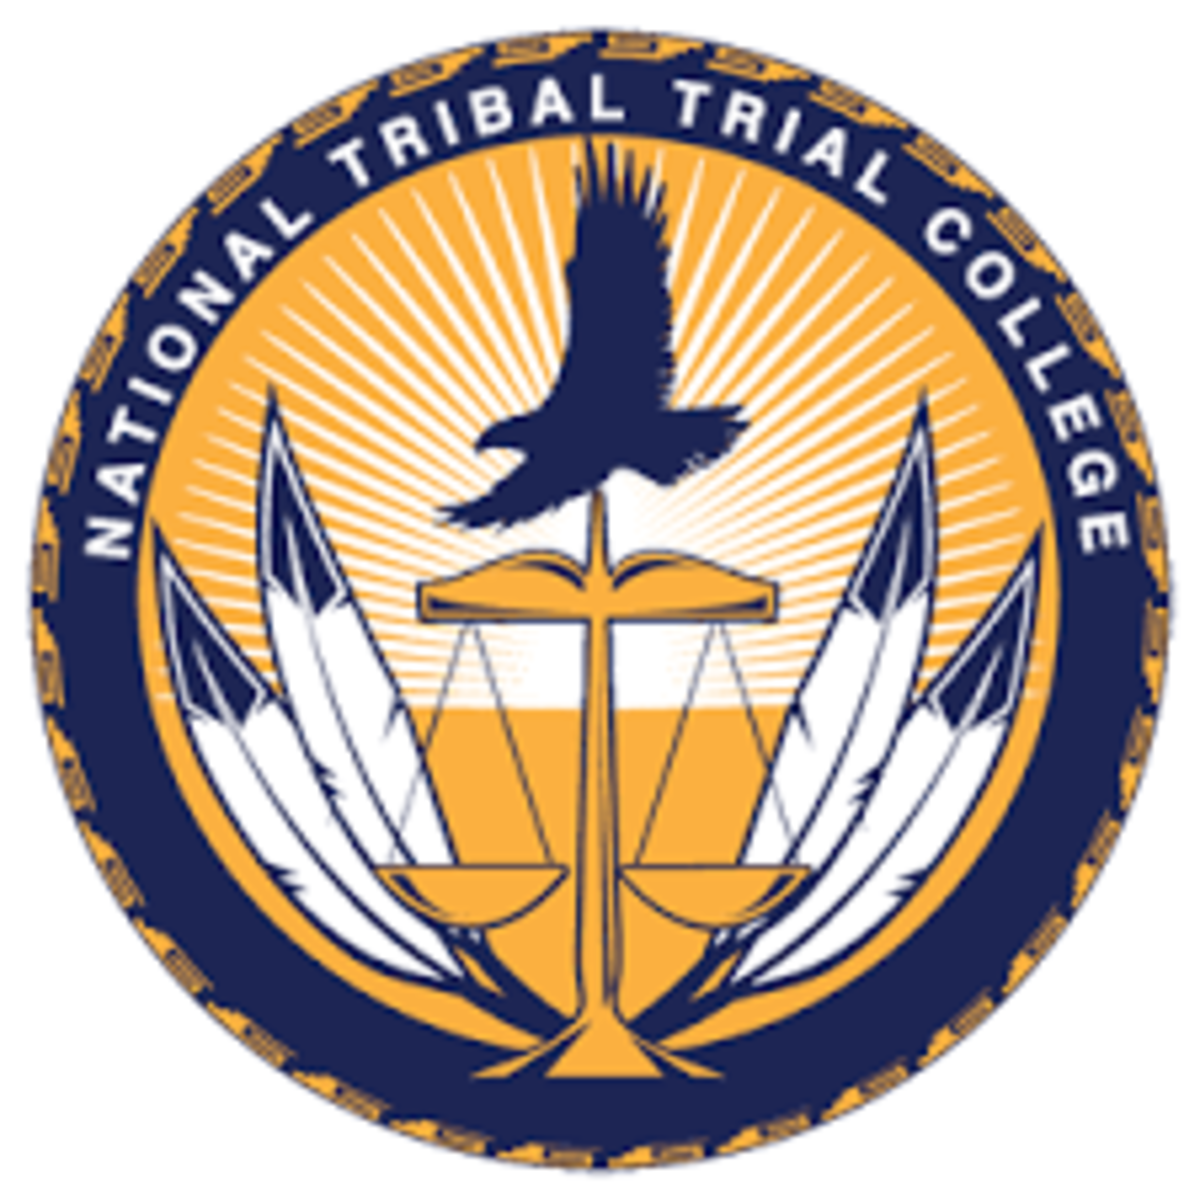 National Tribal Trial College - seal, logo